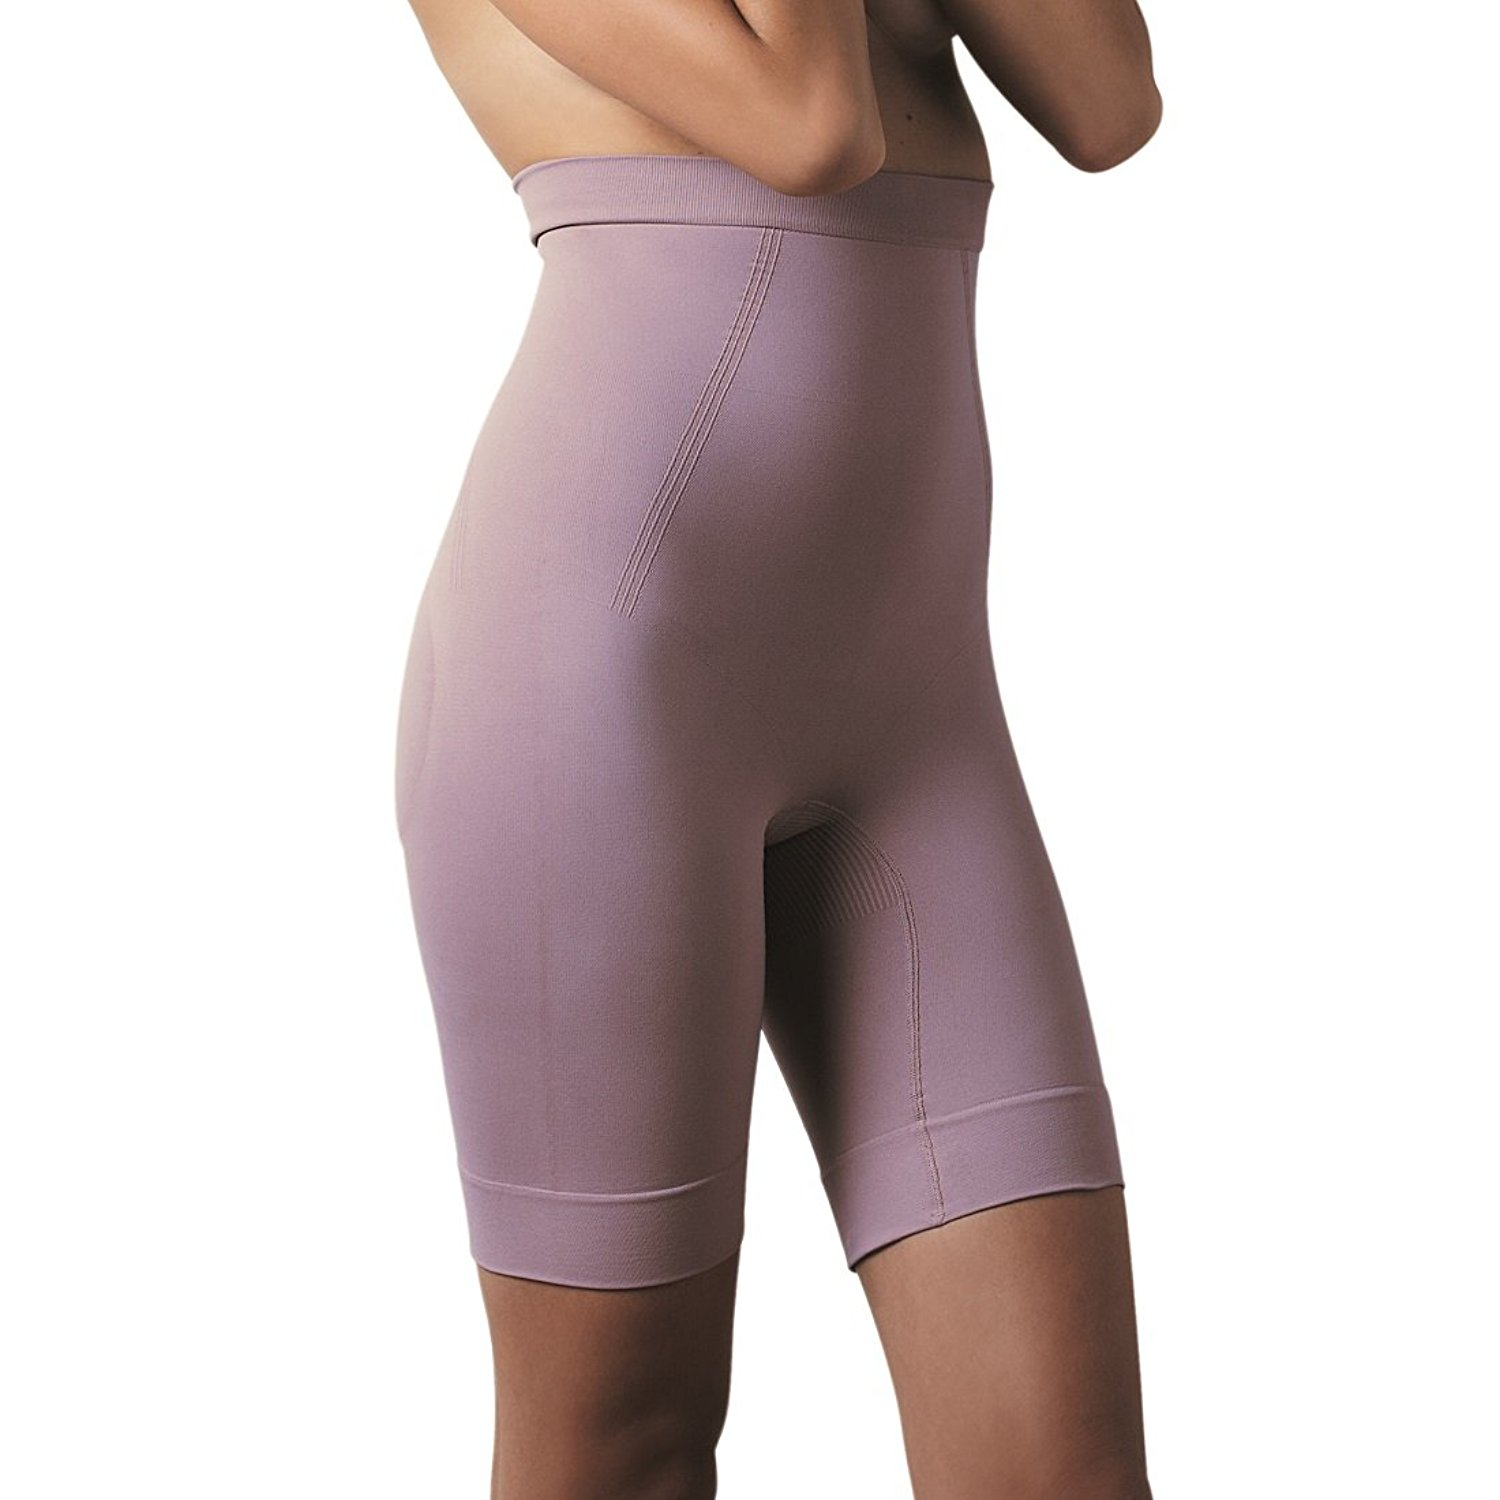 d56a44ac3b Get Quotations · Scala Women s Shapewear Anti-Cellulite High Waist Bermuda  BioPromise